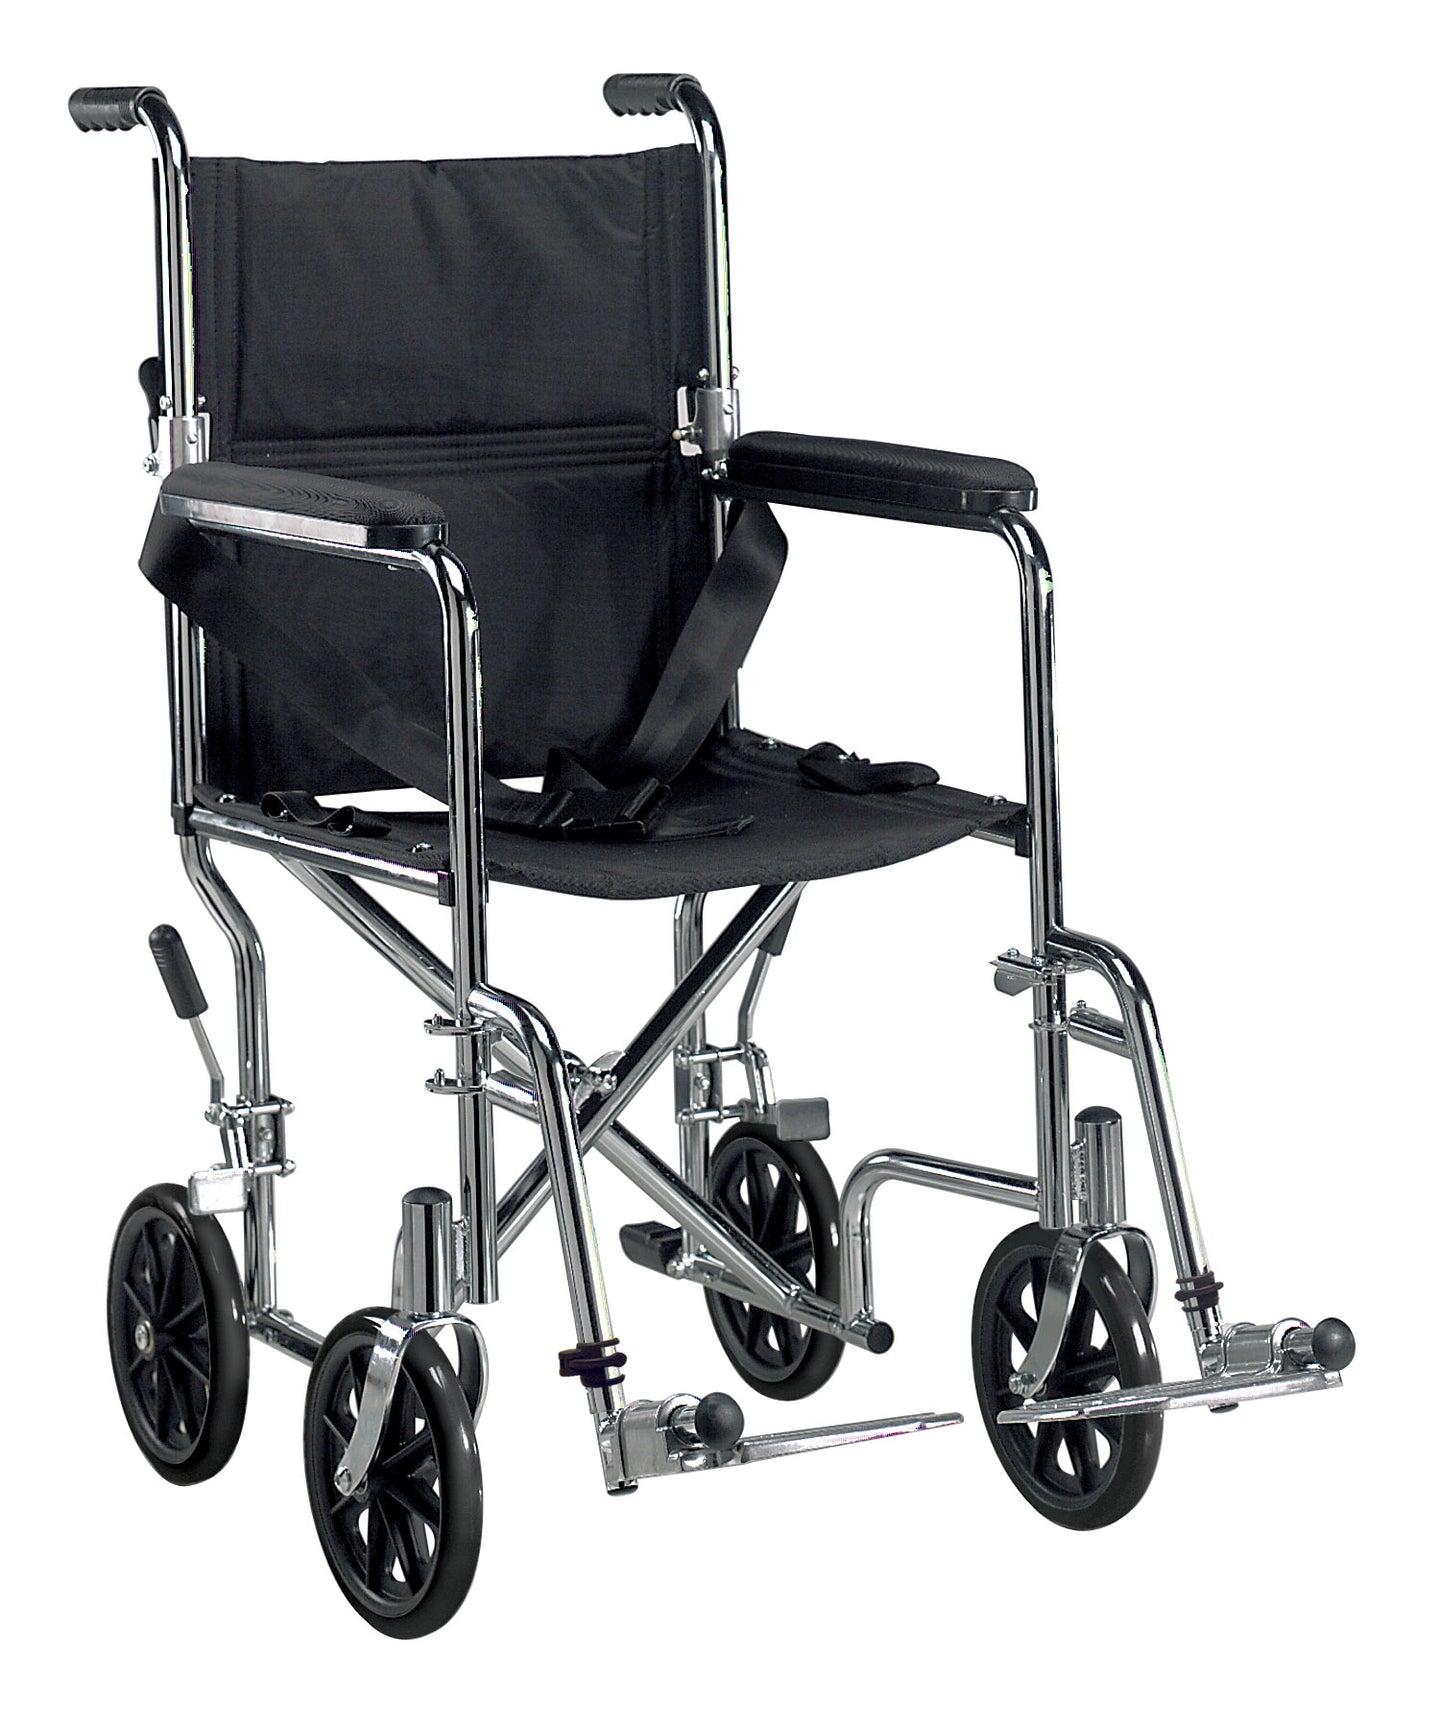 Drive Go Cart Light Weight Steel Transport Wheelchair with Swing Away Footrest- 19